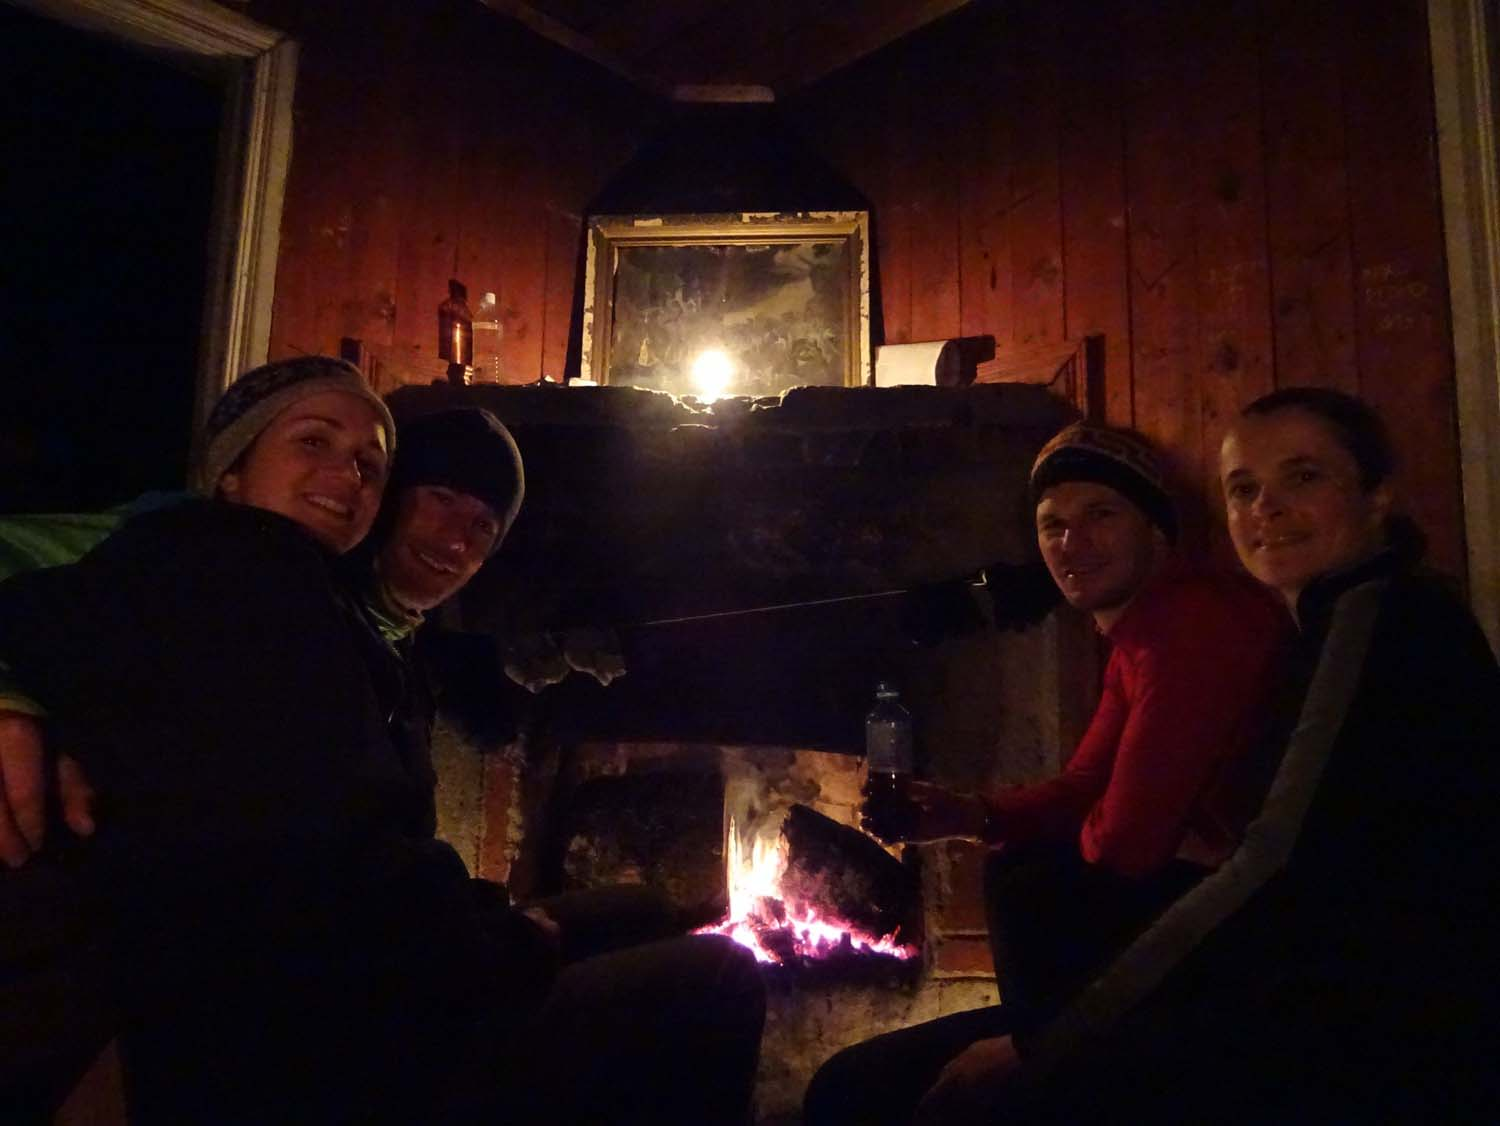 keeping our inside and our outside warm